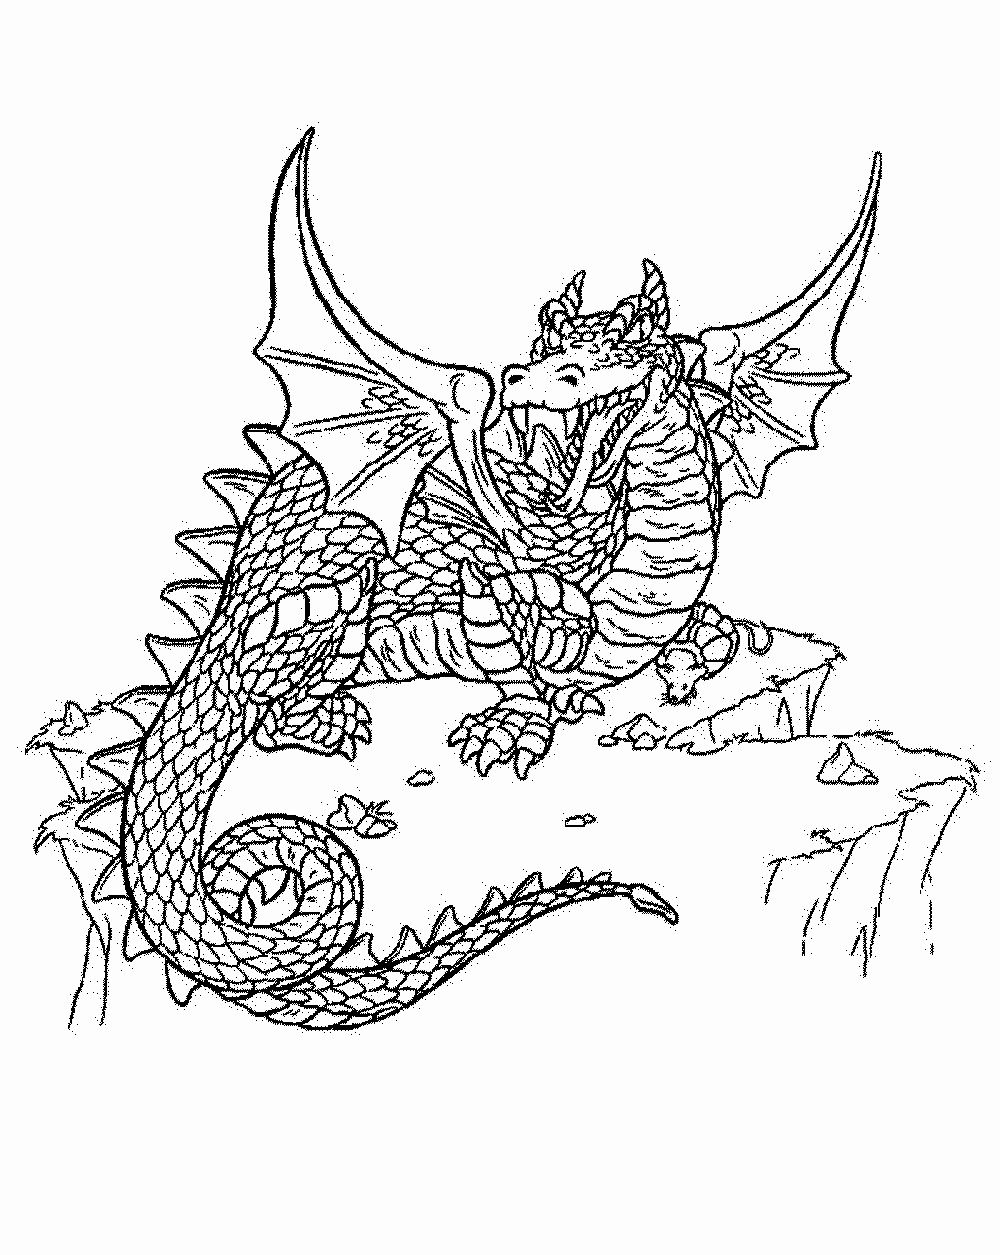 harry potter dragon coloring pages harry potter dragon coloring pages at getdrawings free dragon potter pages coloring harry